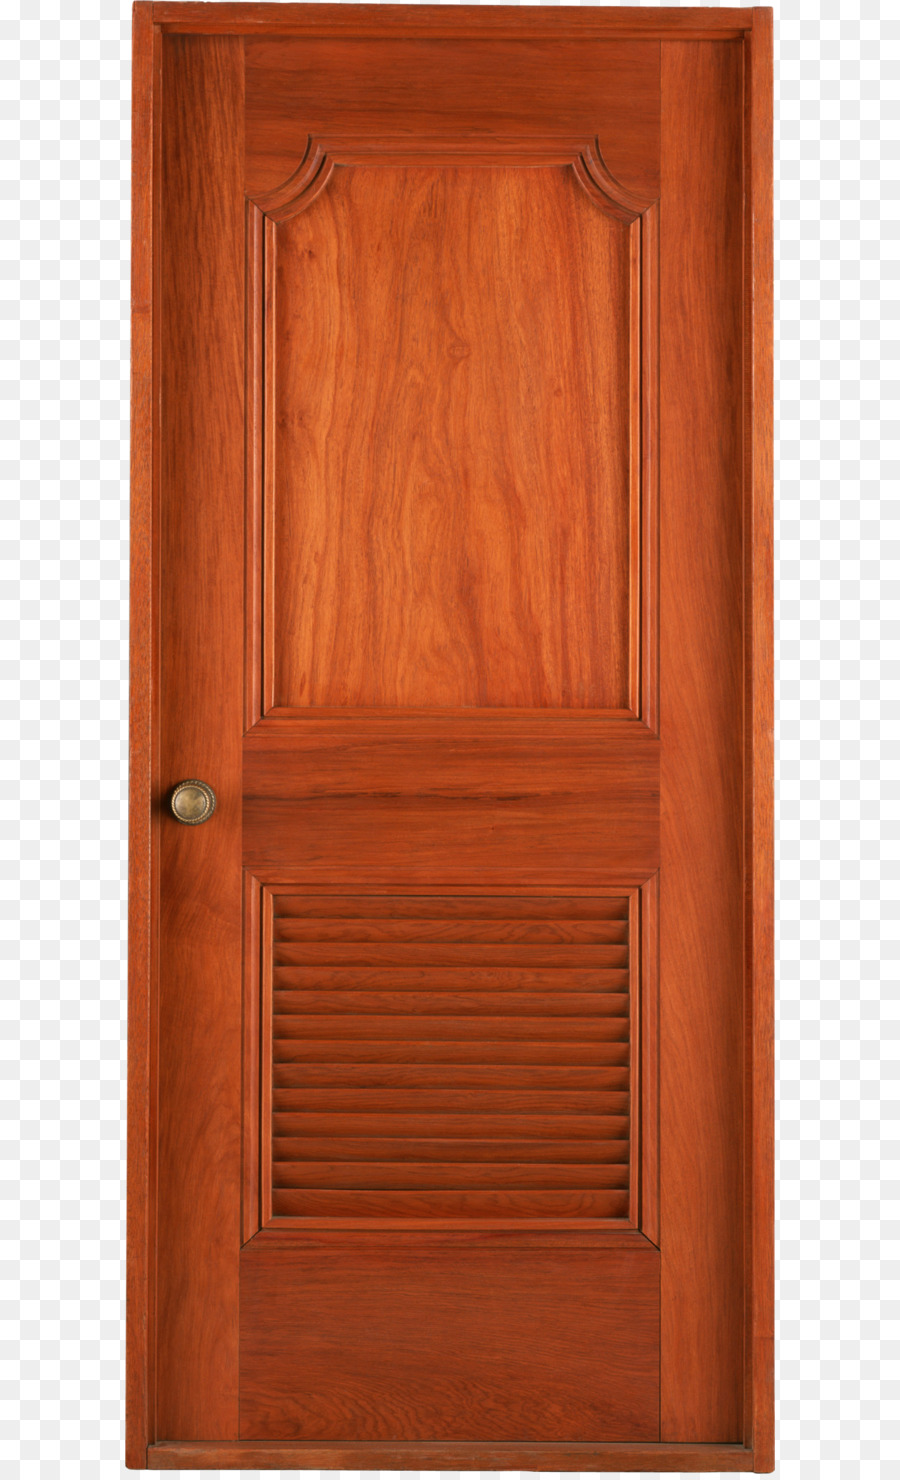 Wooden Door Blinds London University Of Washington Tacoma Npm Wood Door Png Png